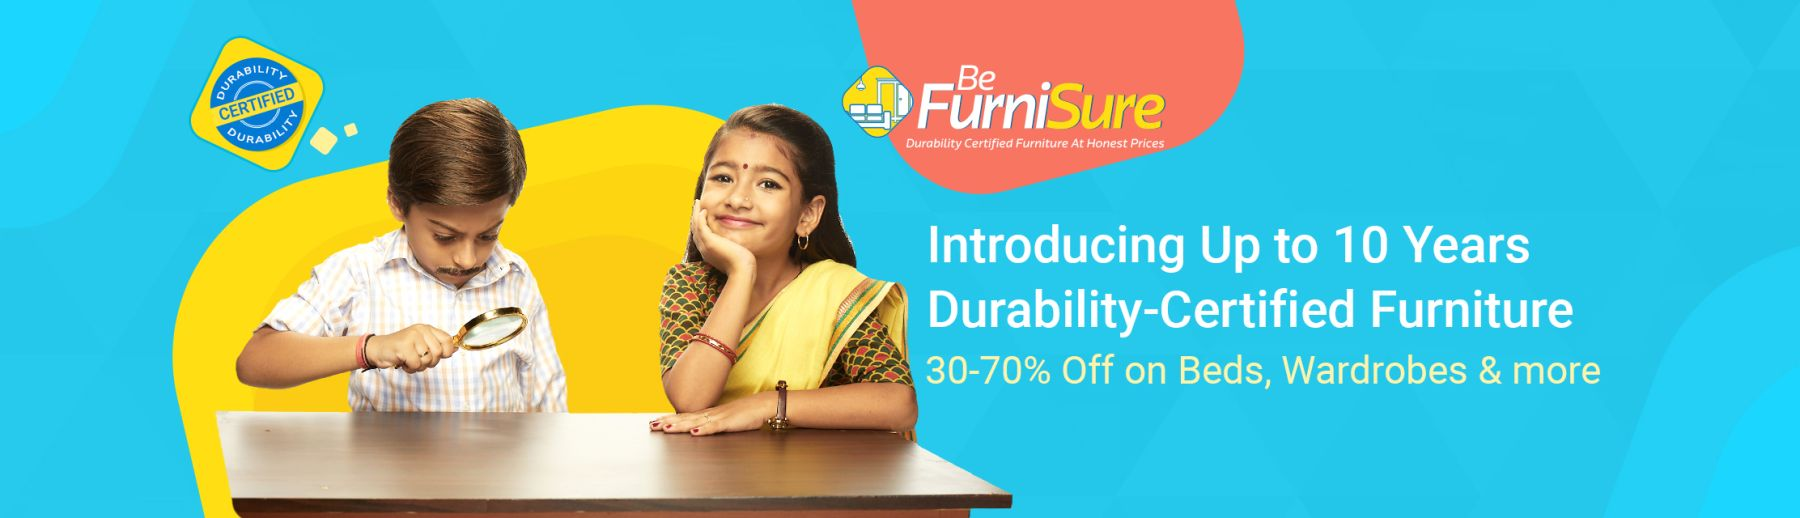 Furniture Buy Furniture Online At Best Prices Furniture Shopping